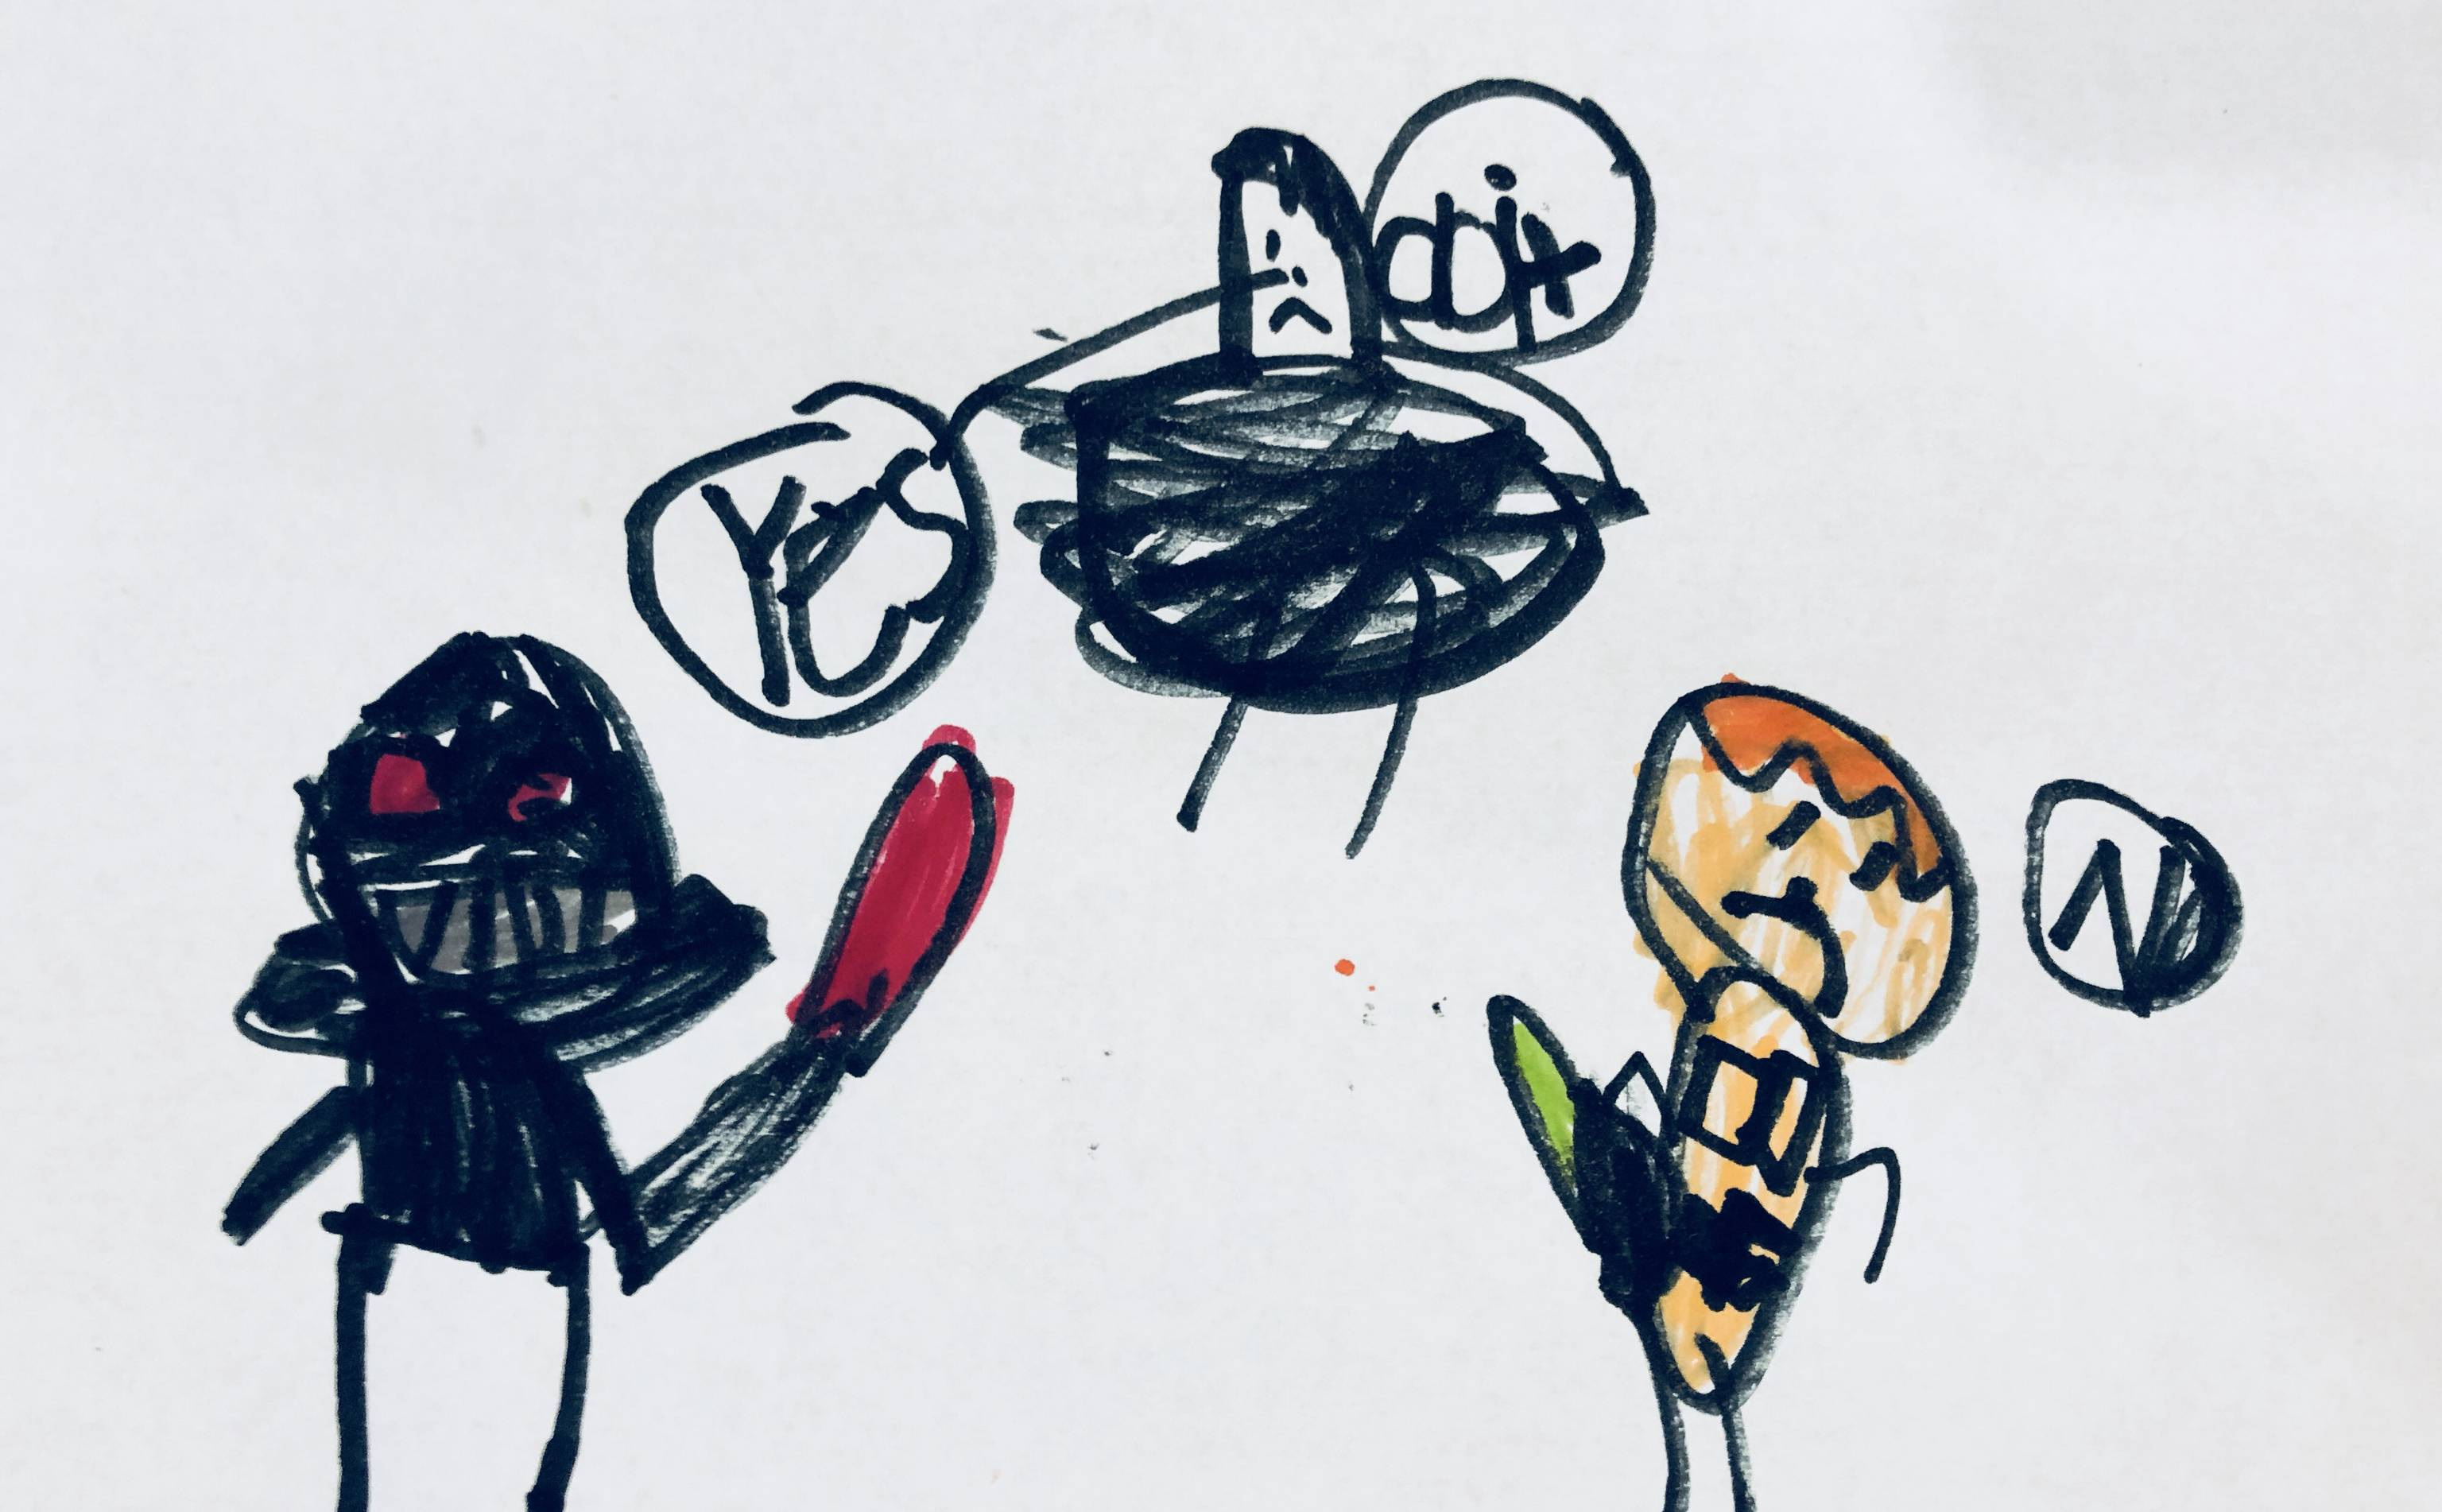 I love that my first grader is into Star Wars